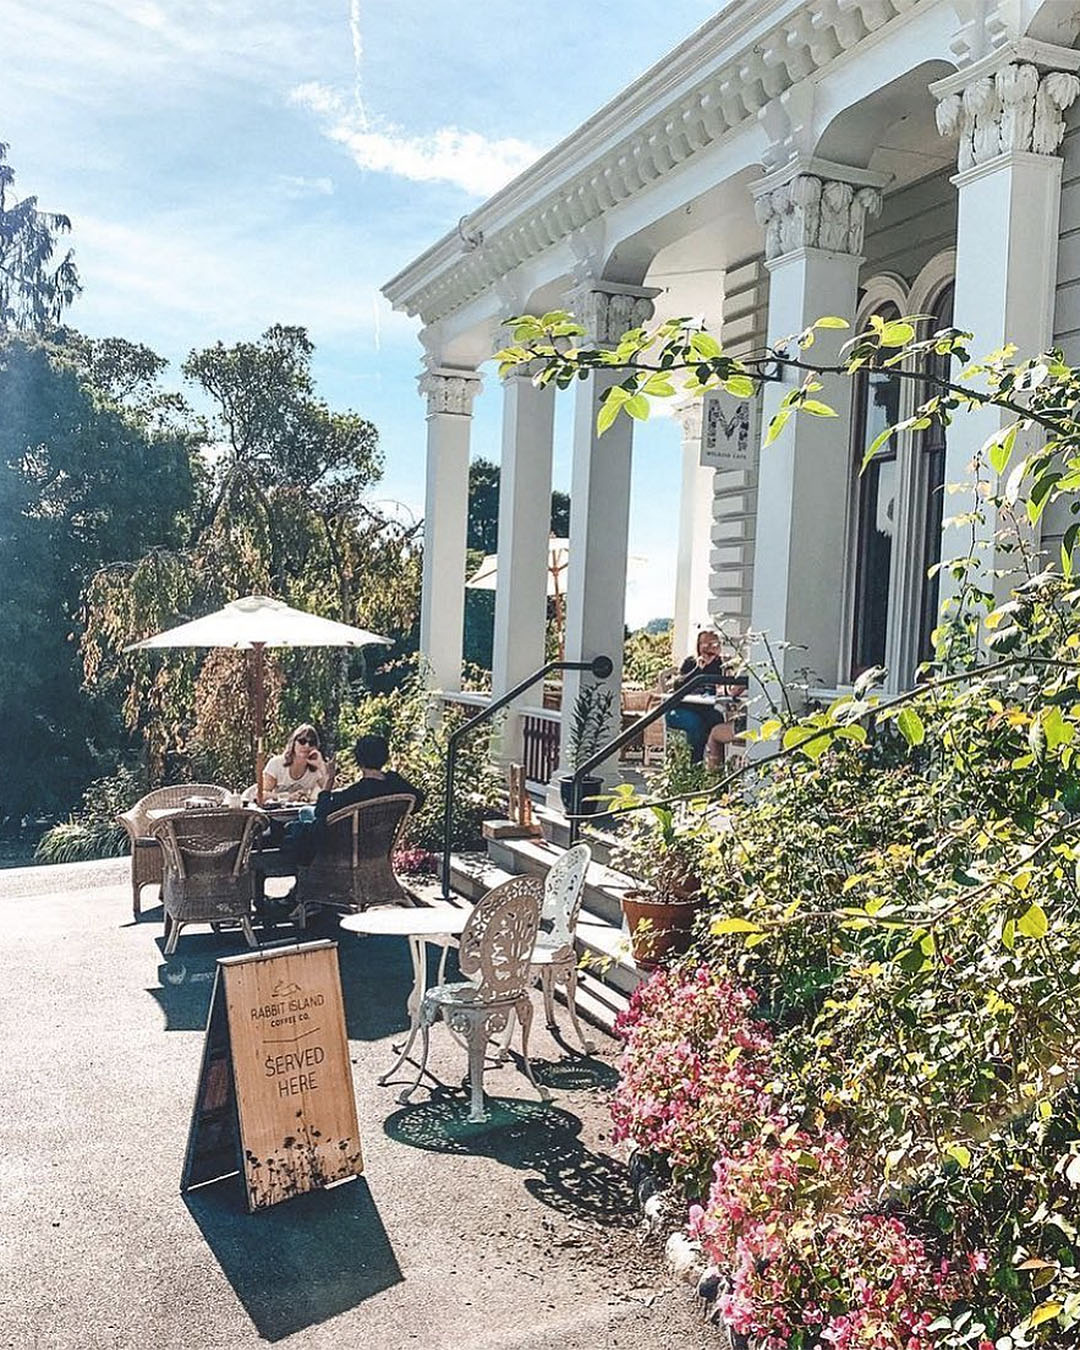 The outdoor seating at Melrose House Cafe on a sunny day